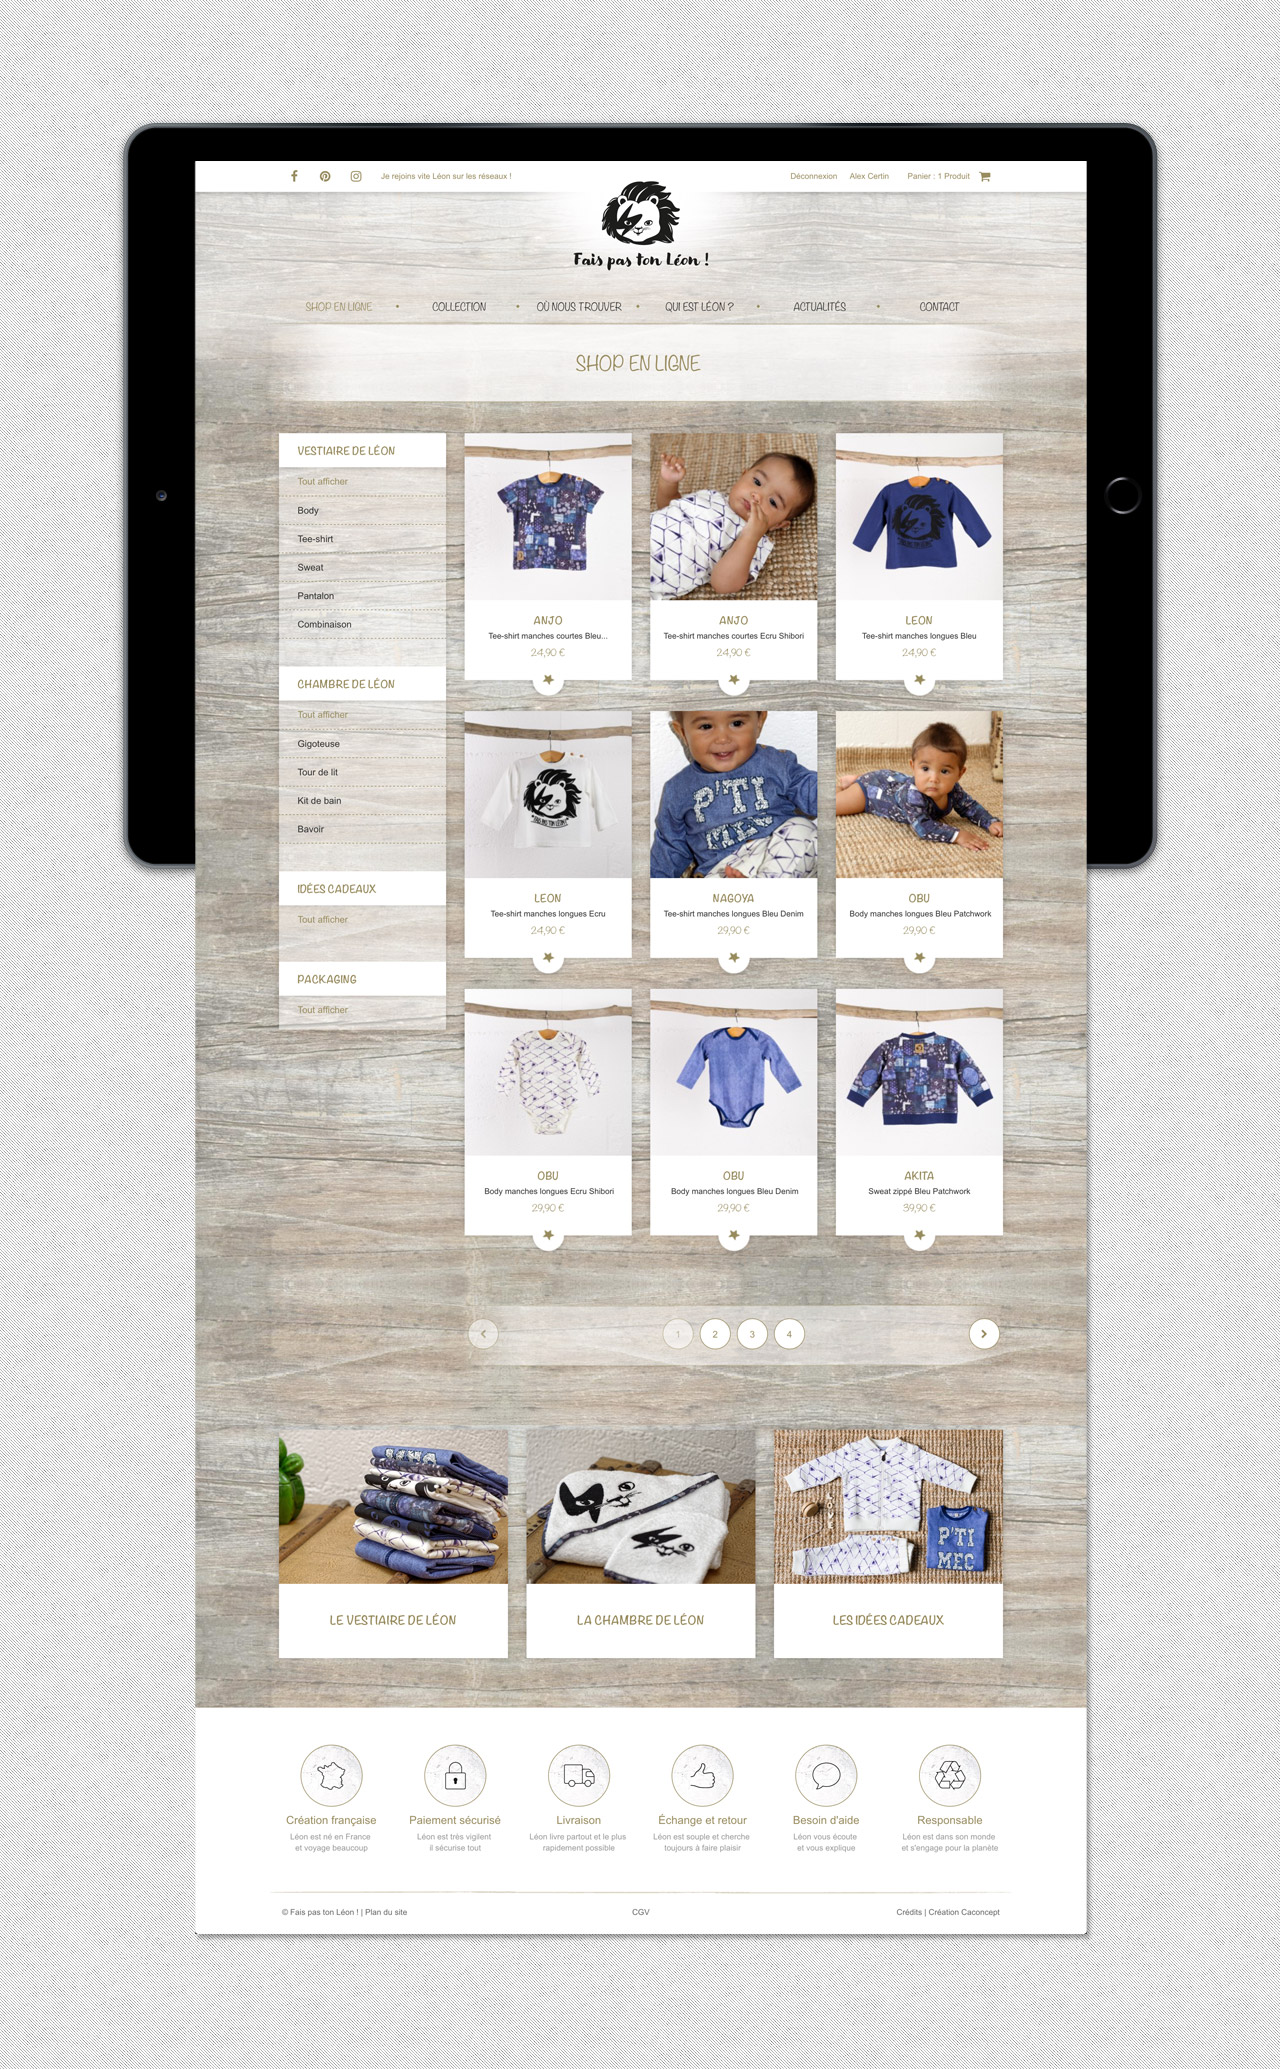 faispastonleon-creation-site-e-commerce-page-categorie-vetements-enfants-caconcept-alexis-cretin-graphiste-montpellier